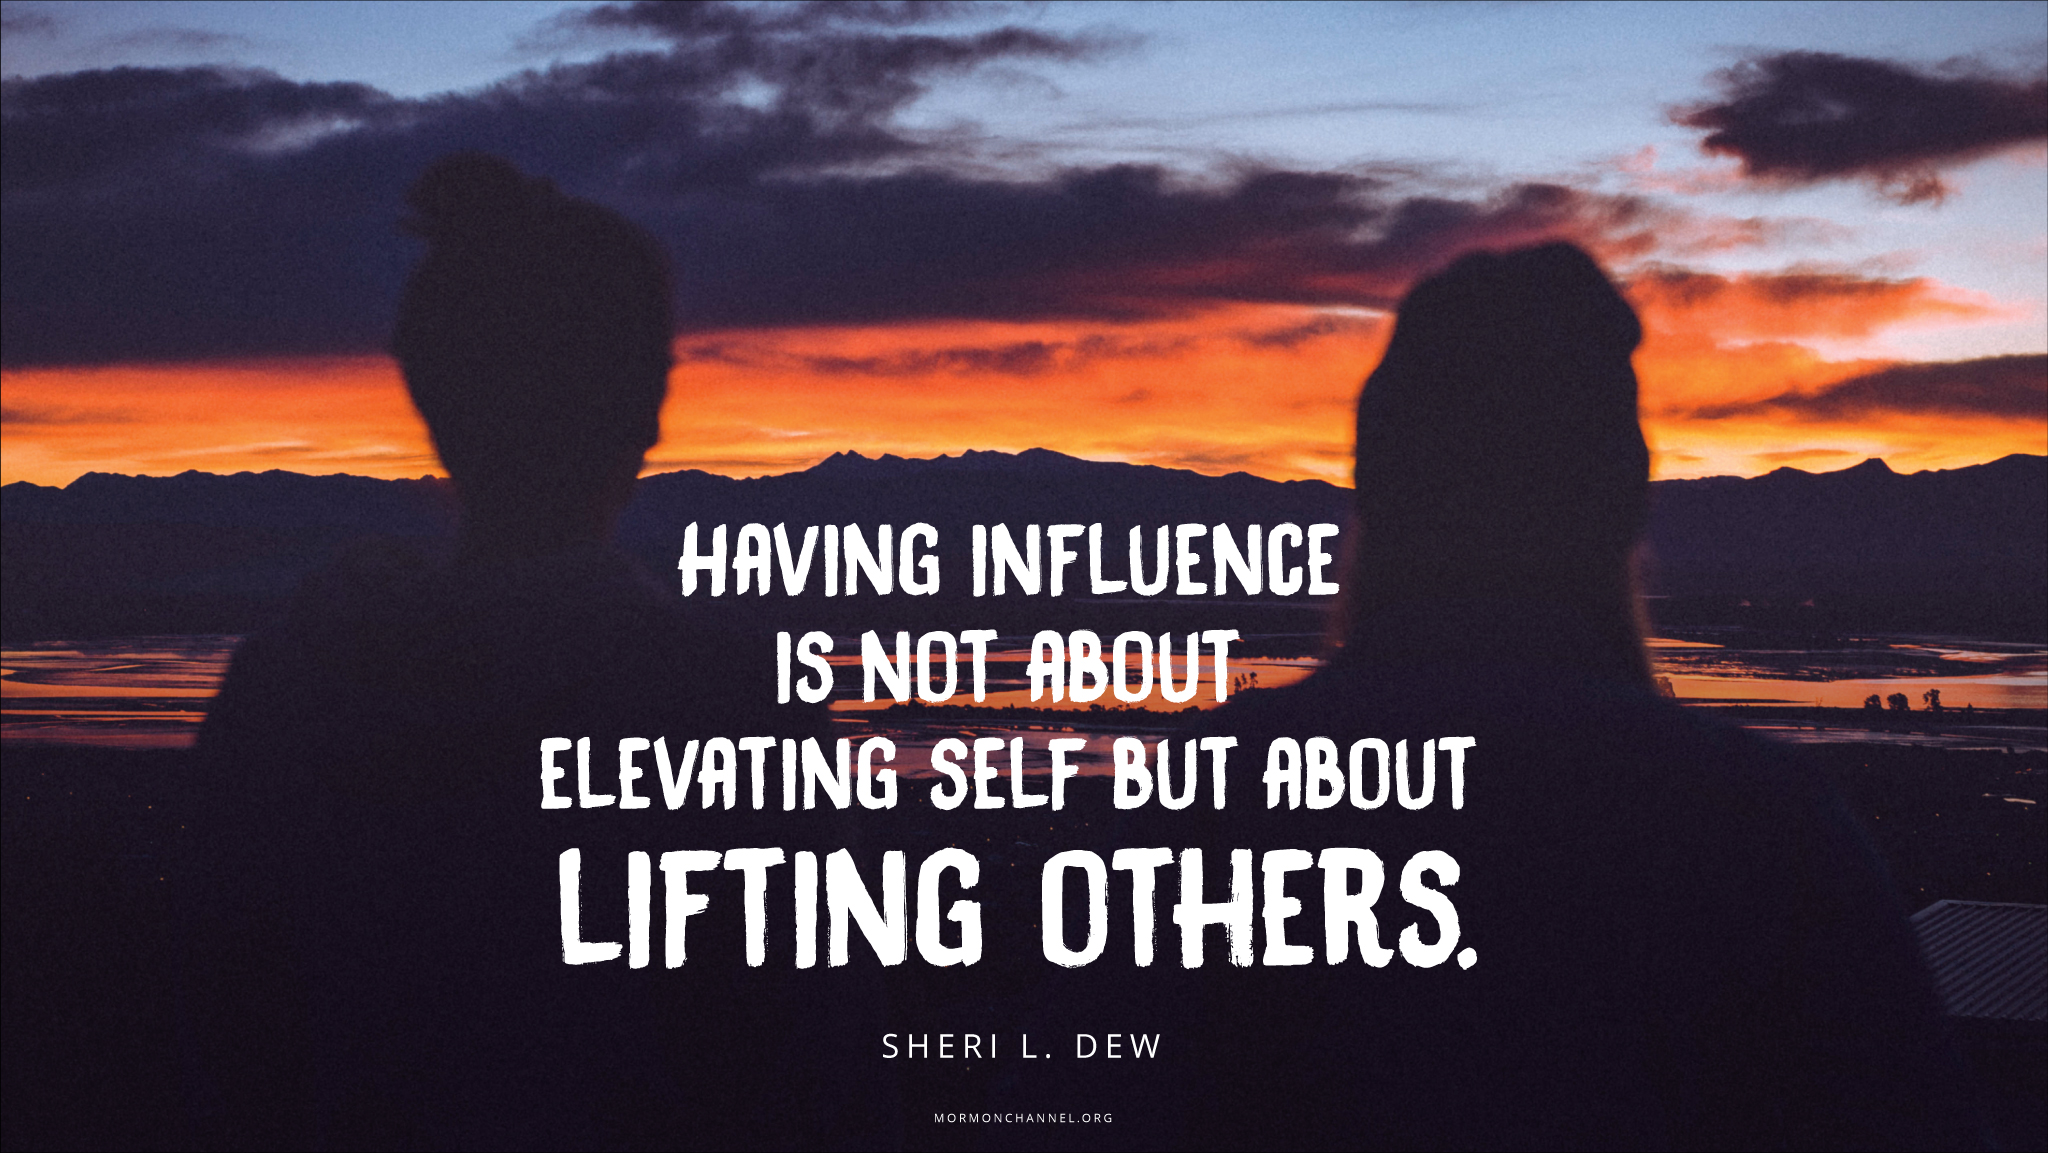 Lifting Quotes Daily Quote Influence Is About Lifting Others  Mormon Channel